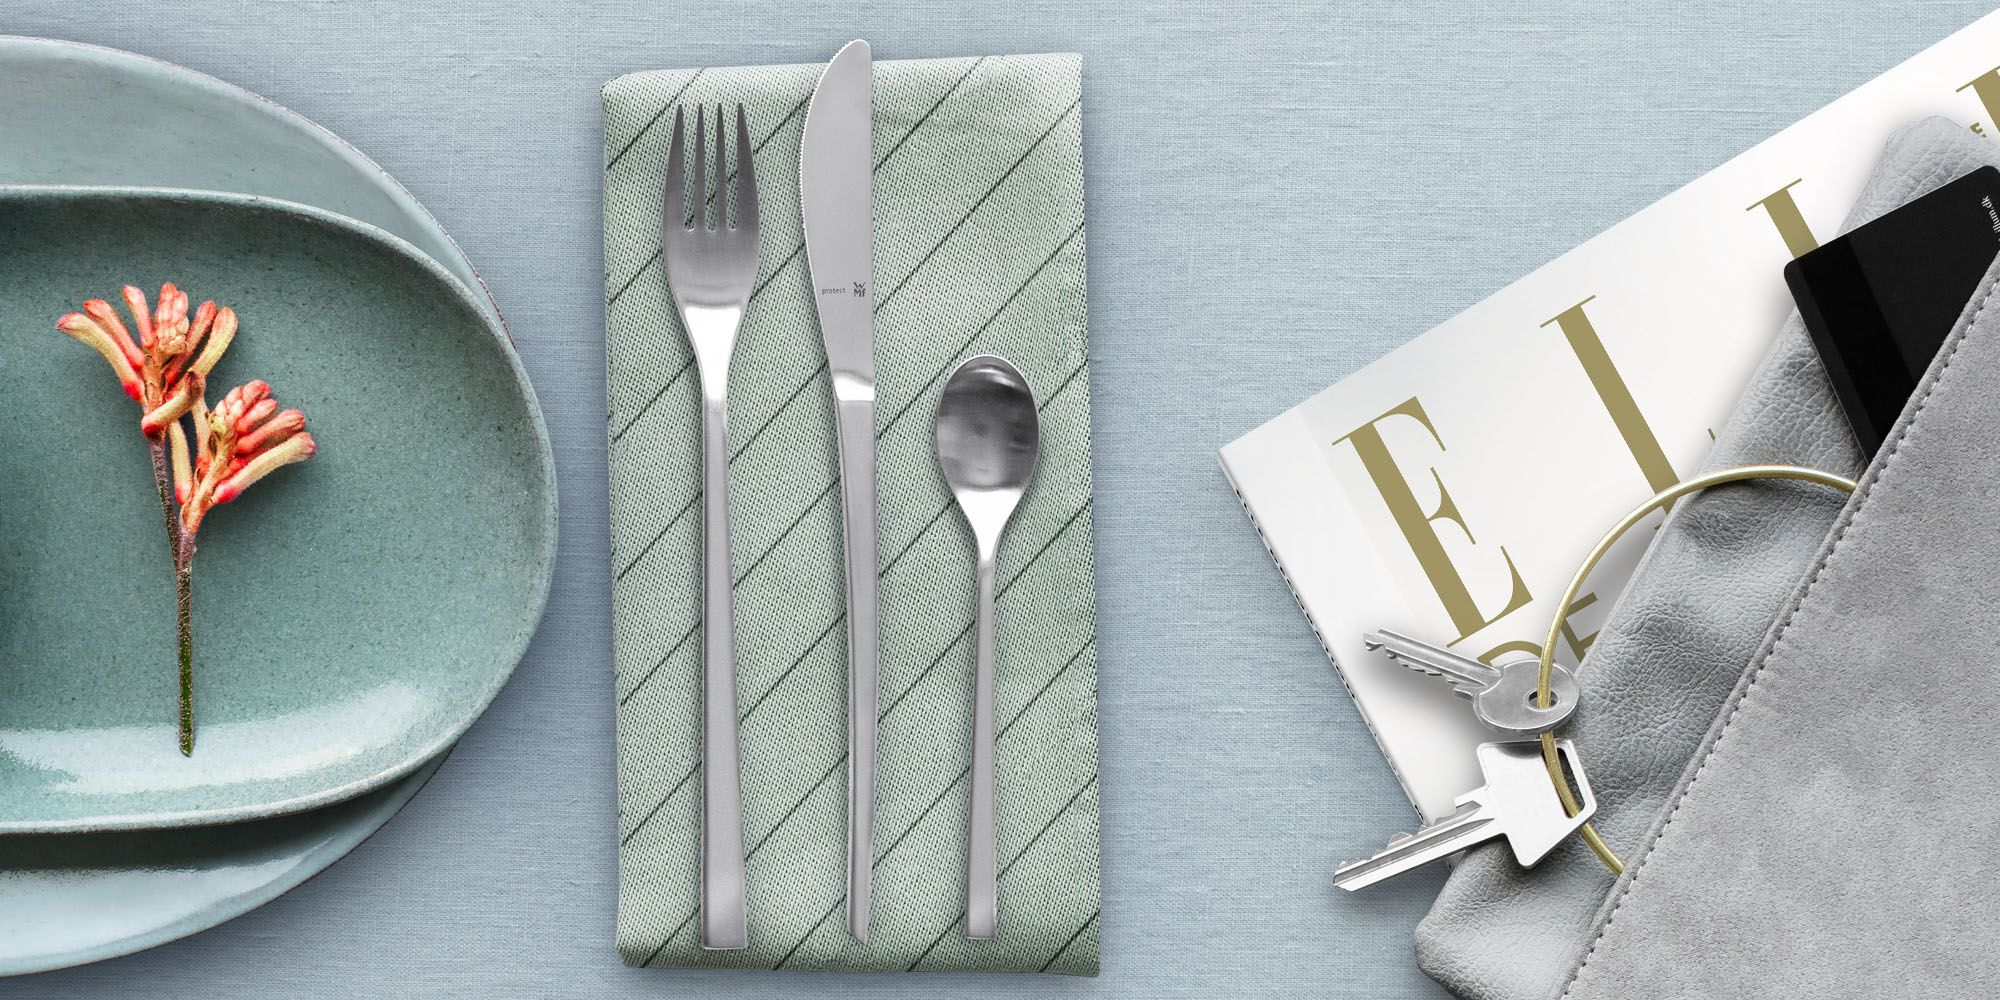 Mise En Place Design wmf collection of cutlery in collaboration with elle decoration